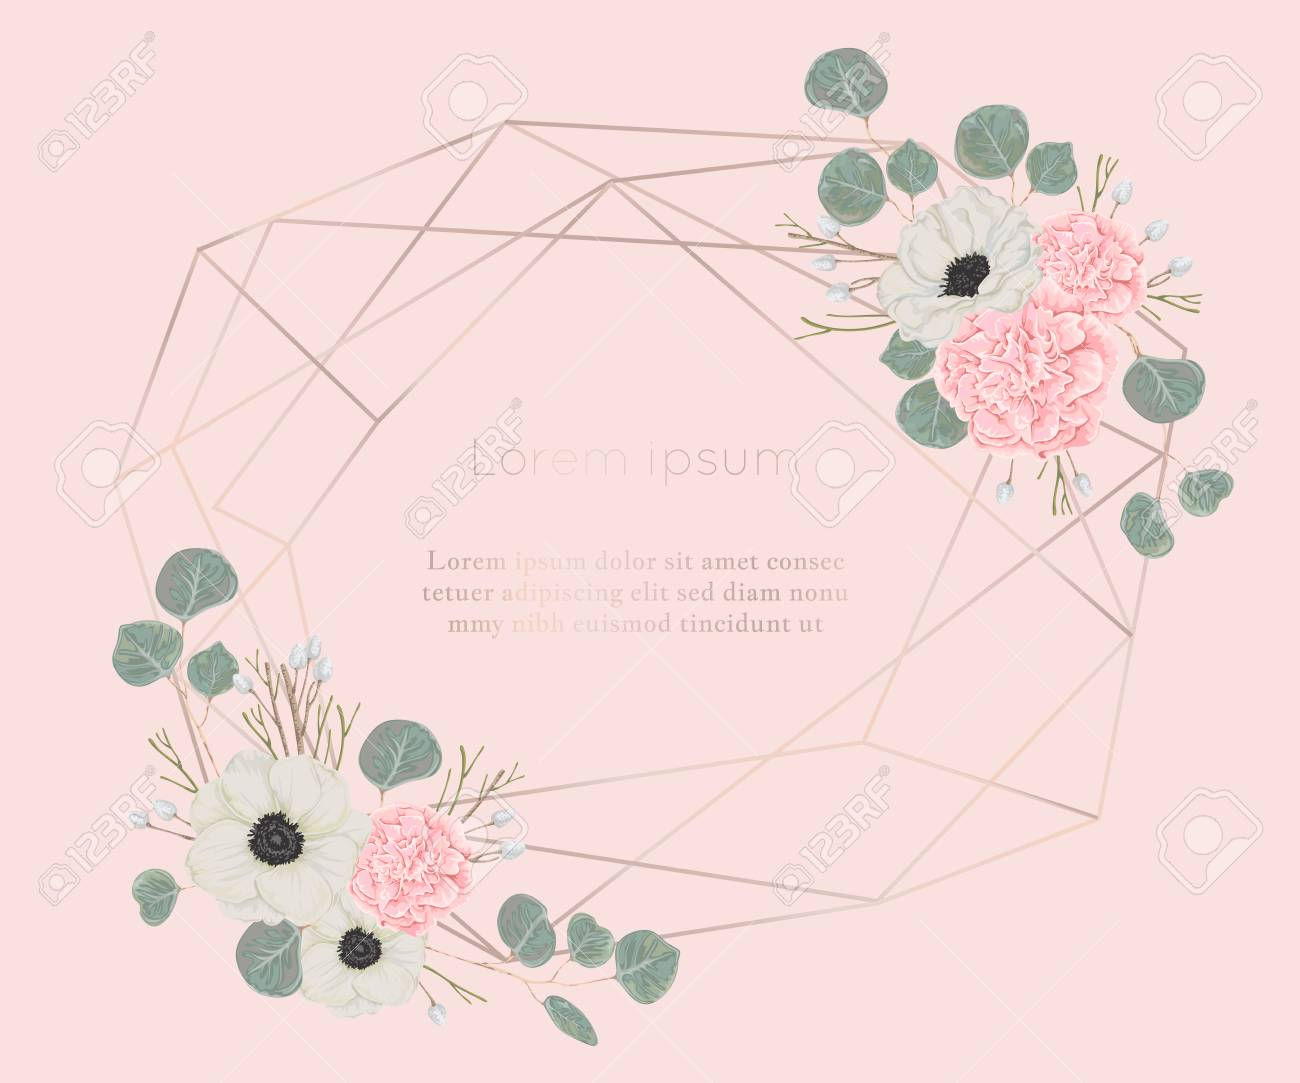 Rose Gold Polygonal Frame With Floral Elements In Watercolor